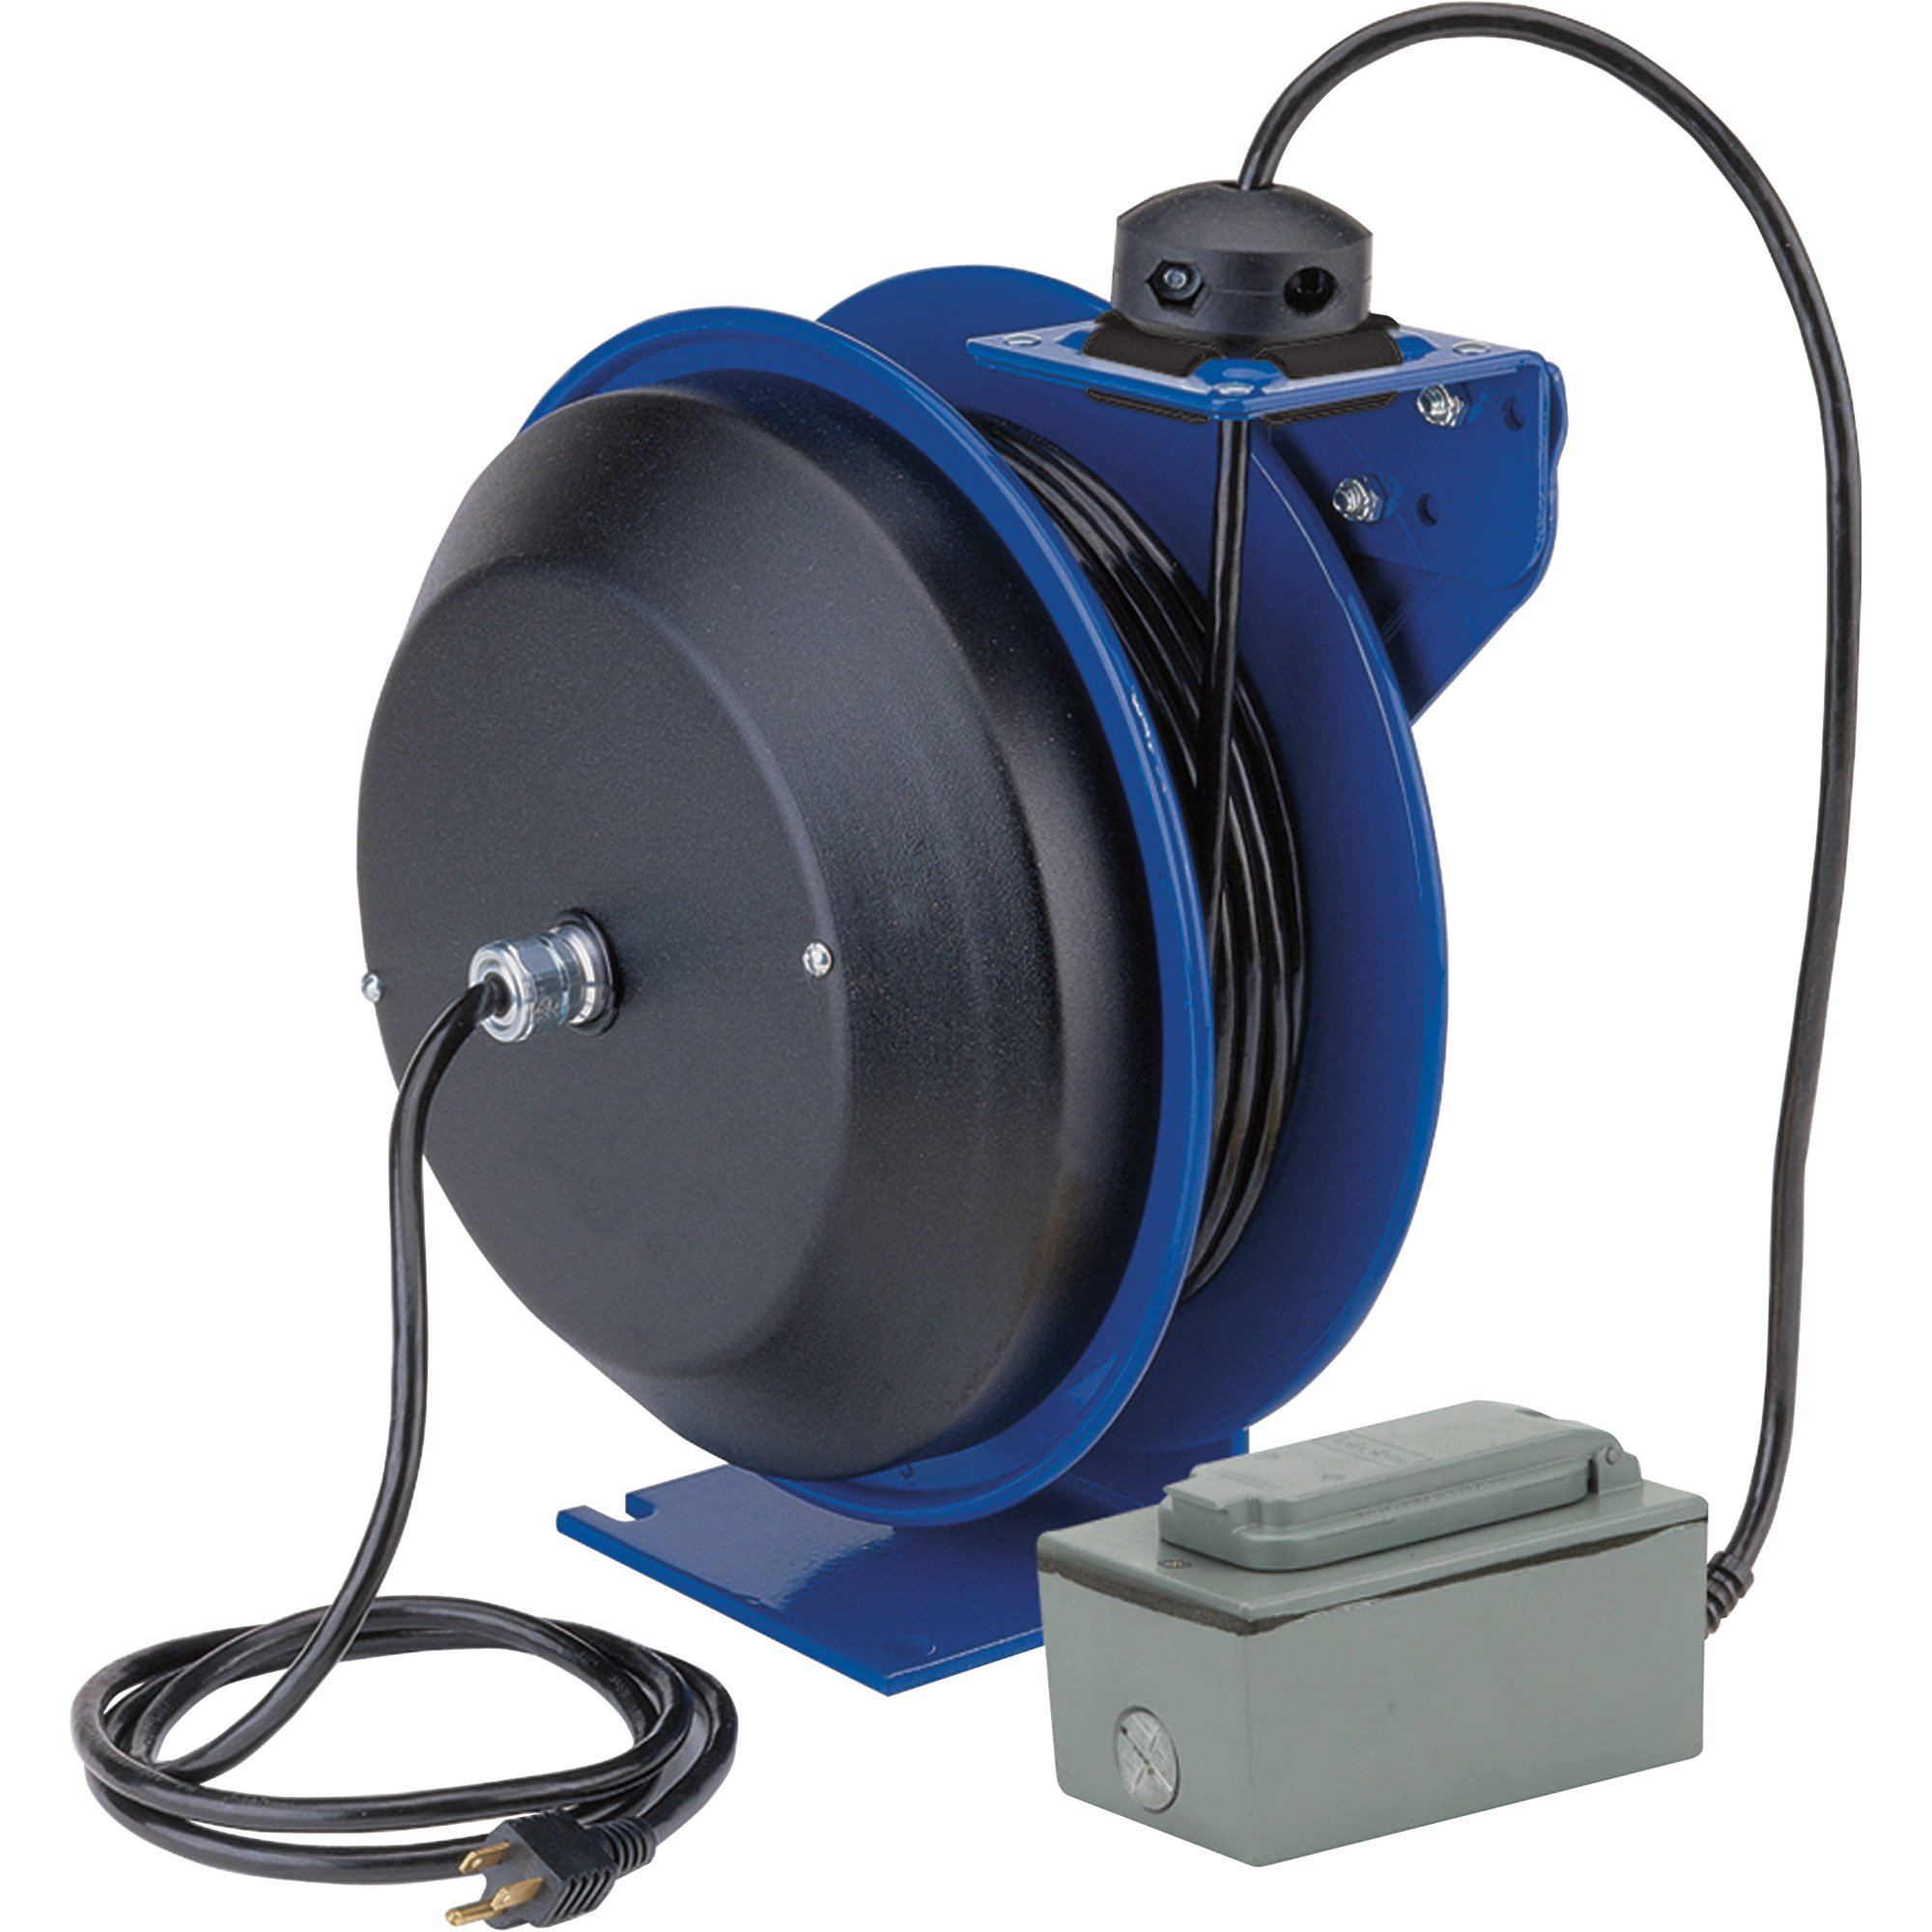 Coxreels PC13-5012-F Power Cord Spring Rewind Reels: Duplex Industrial Receptacle, 50' cord, 12 AWG